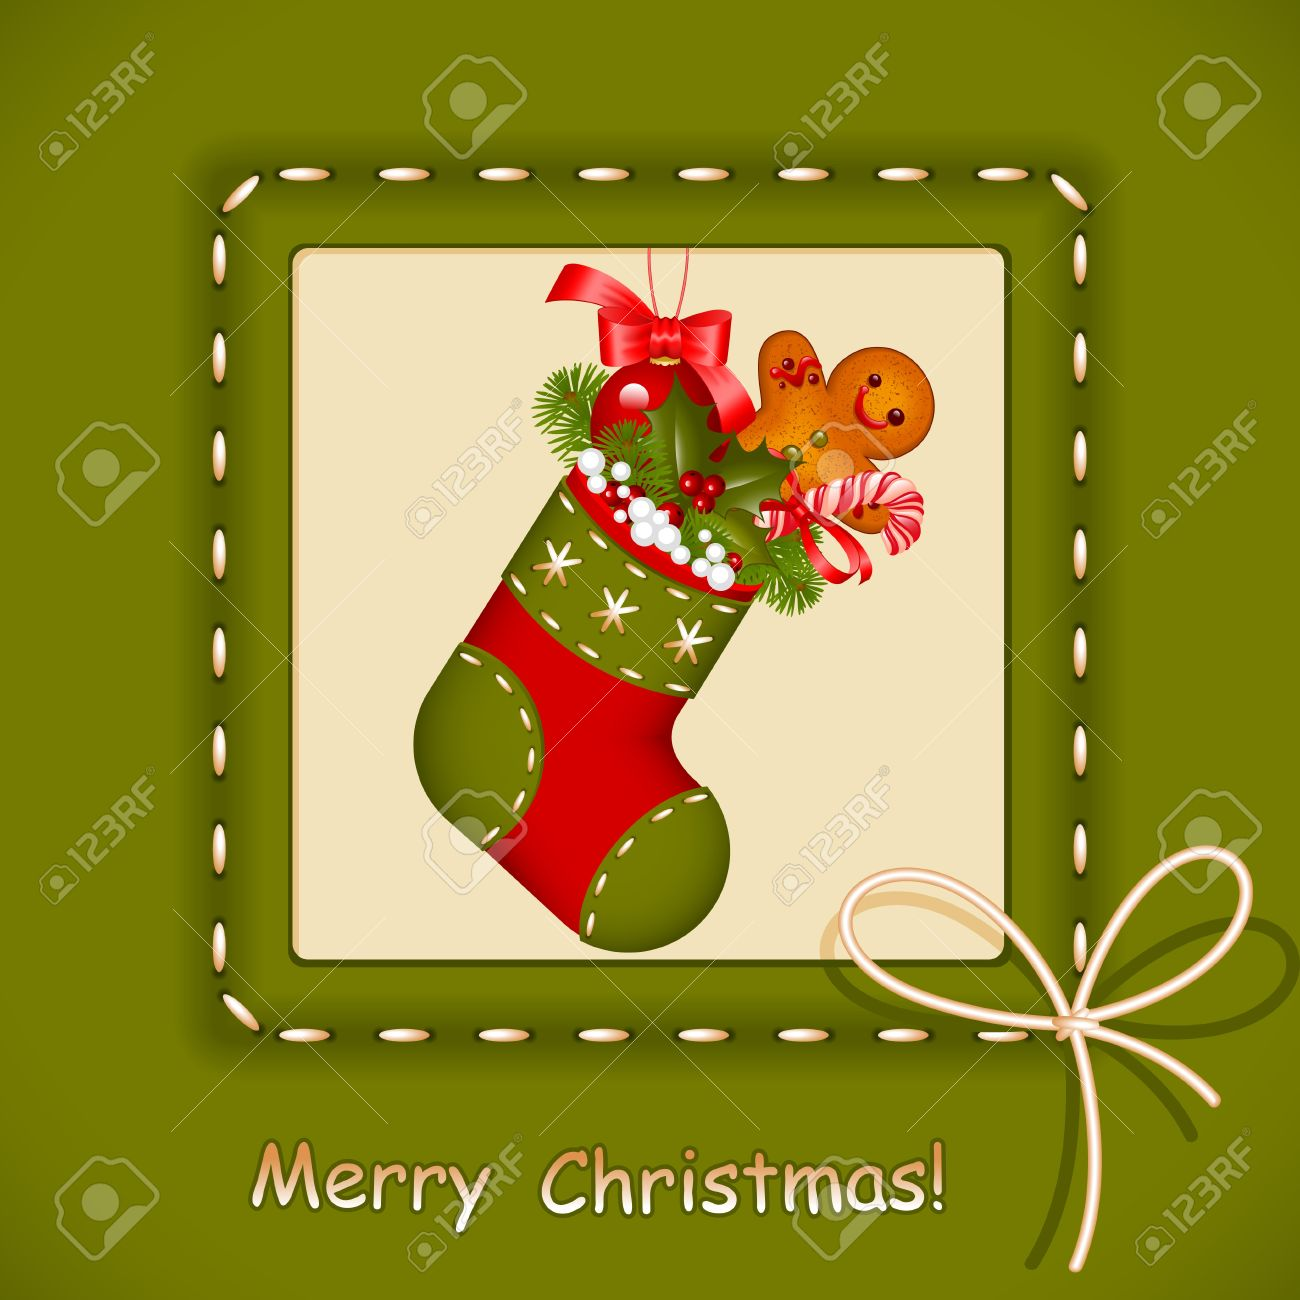 Christmas card. stocking with red ball christmas, cookies, candy and holly berry in frame with bow. Congratulation Merry Christmas. Vector illustration. - 11355047